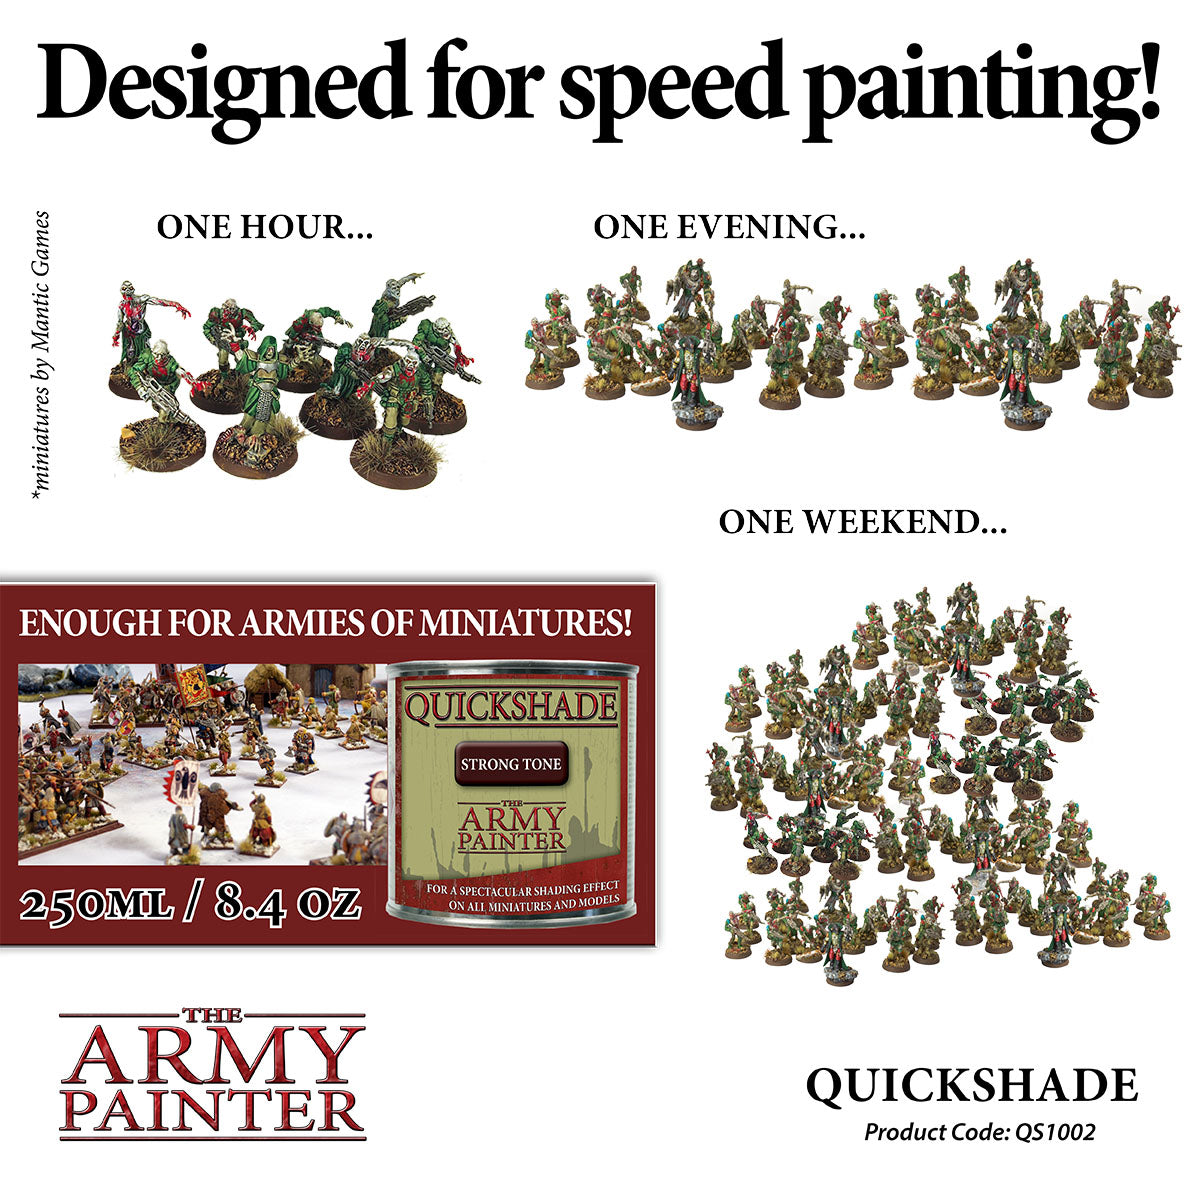 Quickshade: Strong Tone | Davis Cards & Games